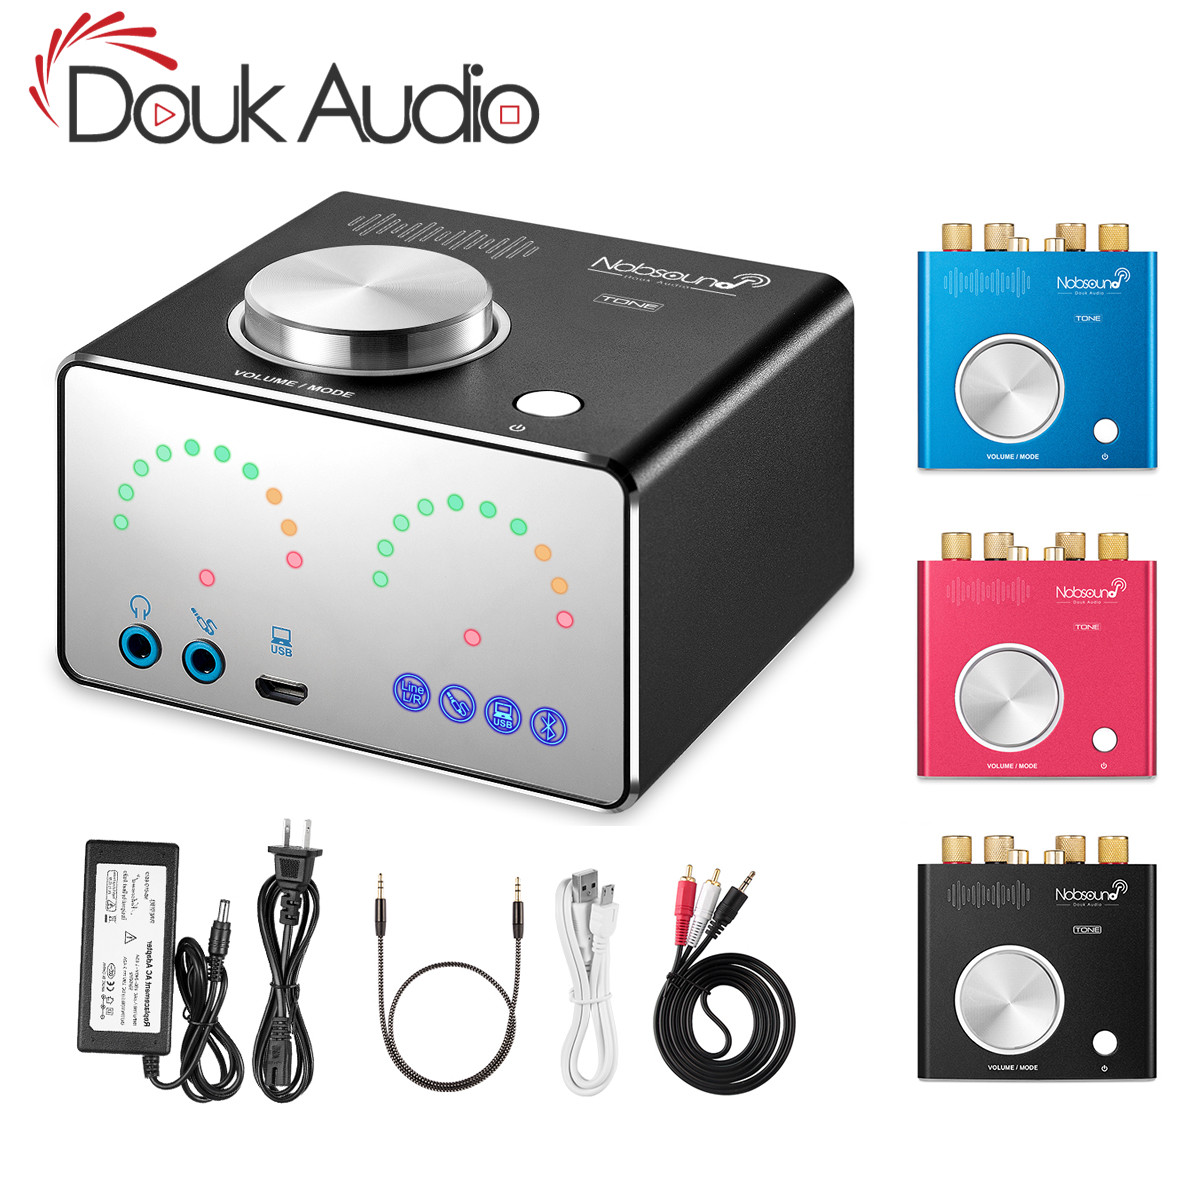 Douk audio HiFi Bluetooth 4.2 Digital Power Amplifiers Home Audio Mini Desktop Integrated Stereo Headphone Amp USB Sound CardDouk audio HiFi Bluetooth 4.2 Digital Power Amplifiers Home Audio Mini Desktop Integrated Stereo Headphone Amp USB Sound Card